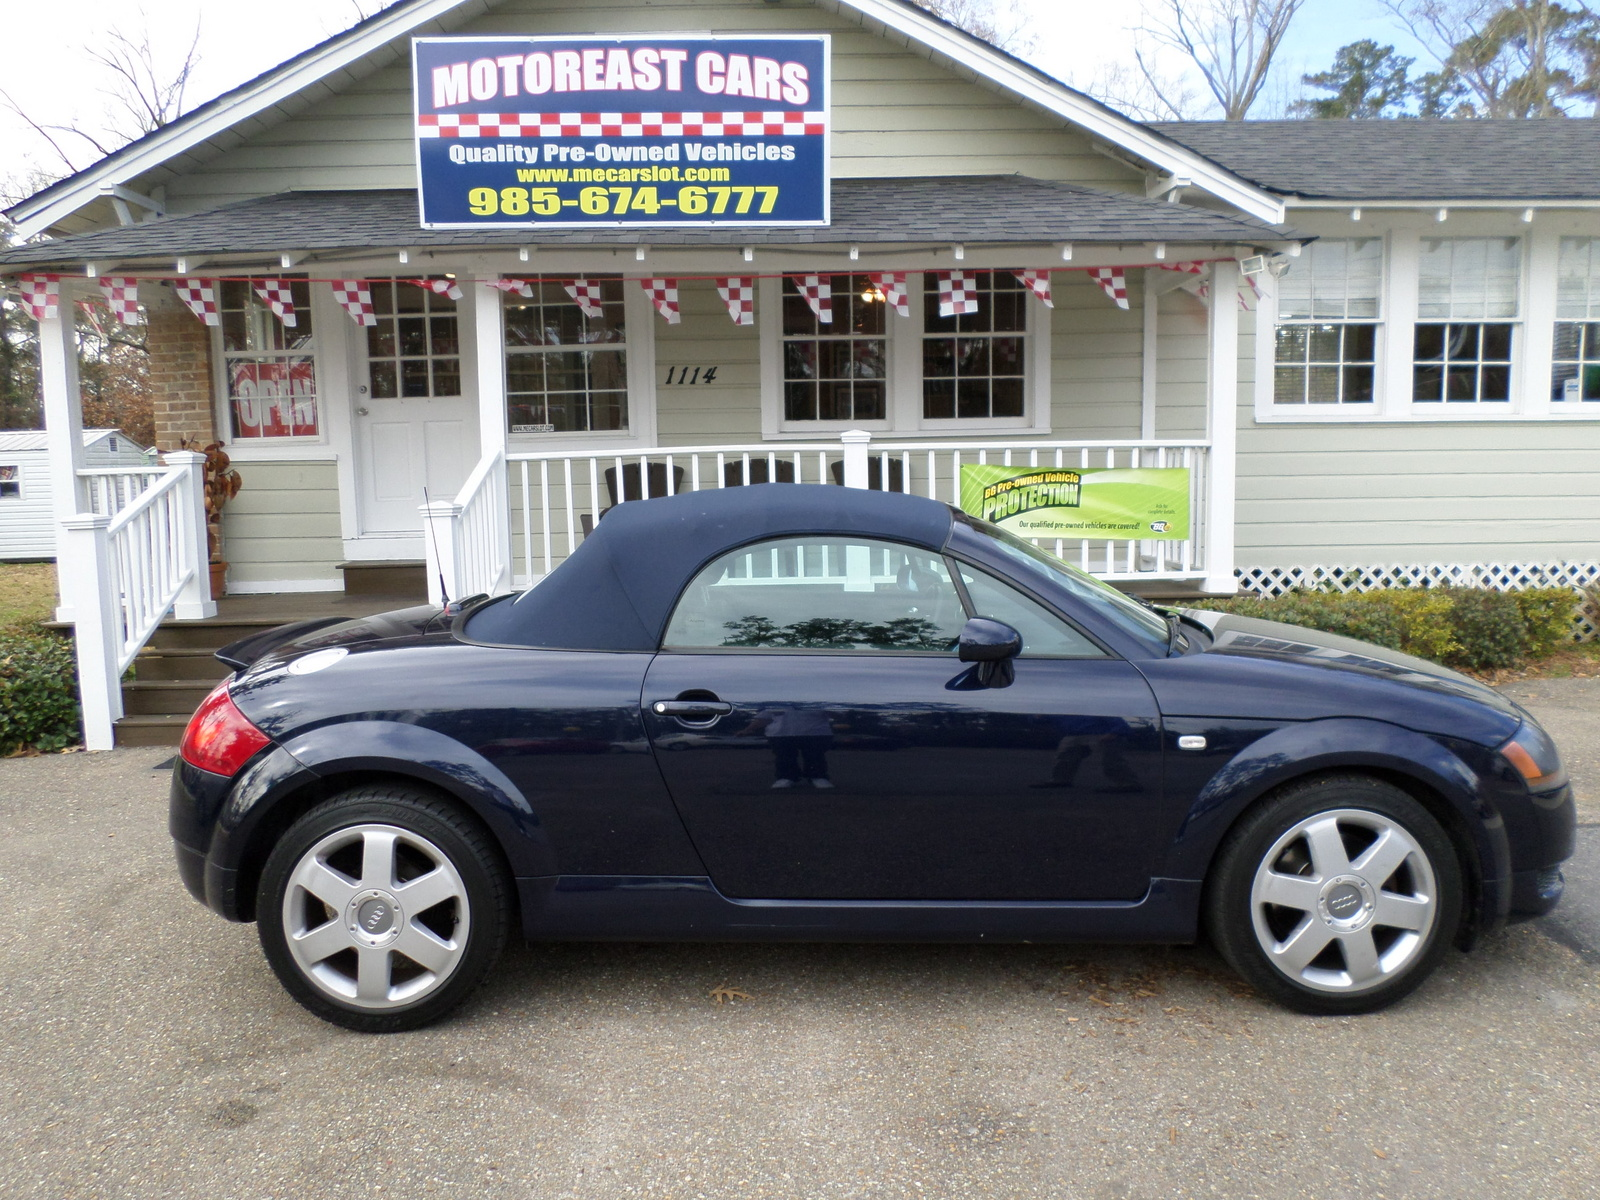 2002 audi tt roadster for sale usa cargurus. Black Bedroom Furniture Sets. Home Design Ideas